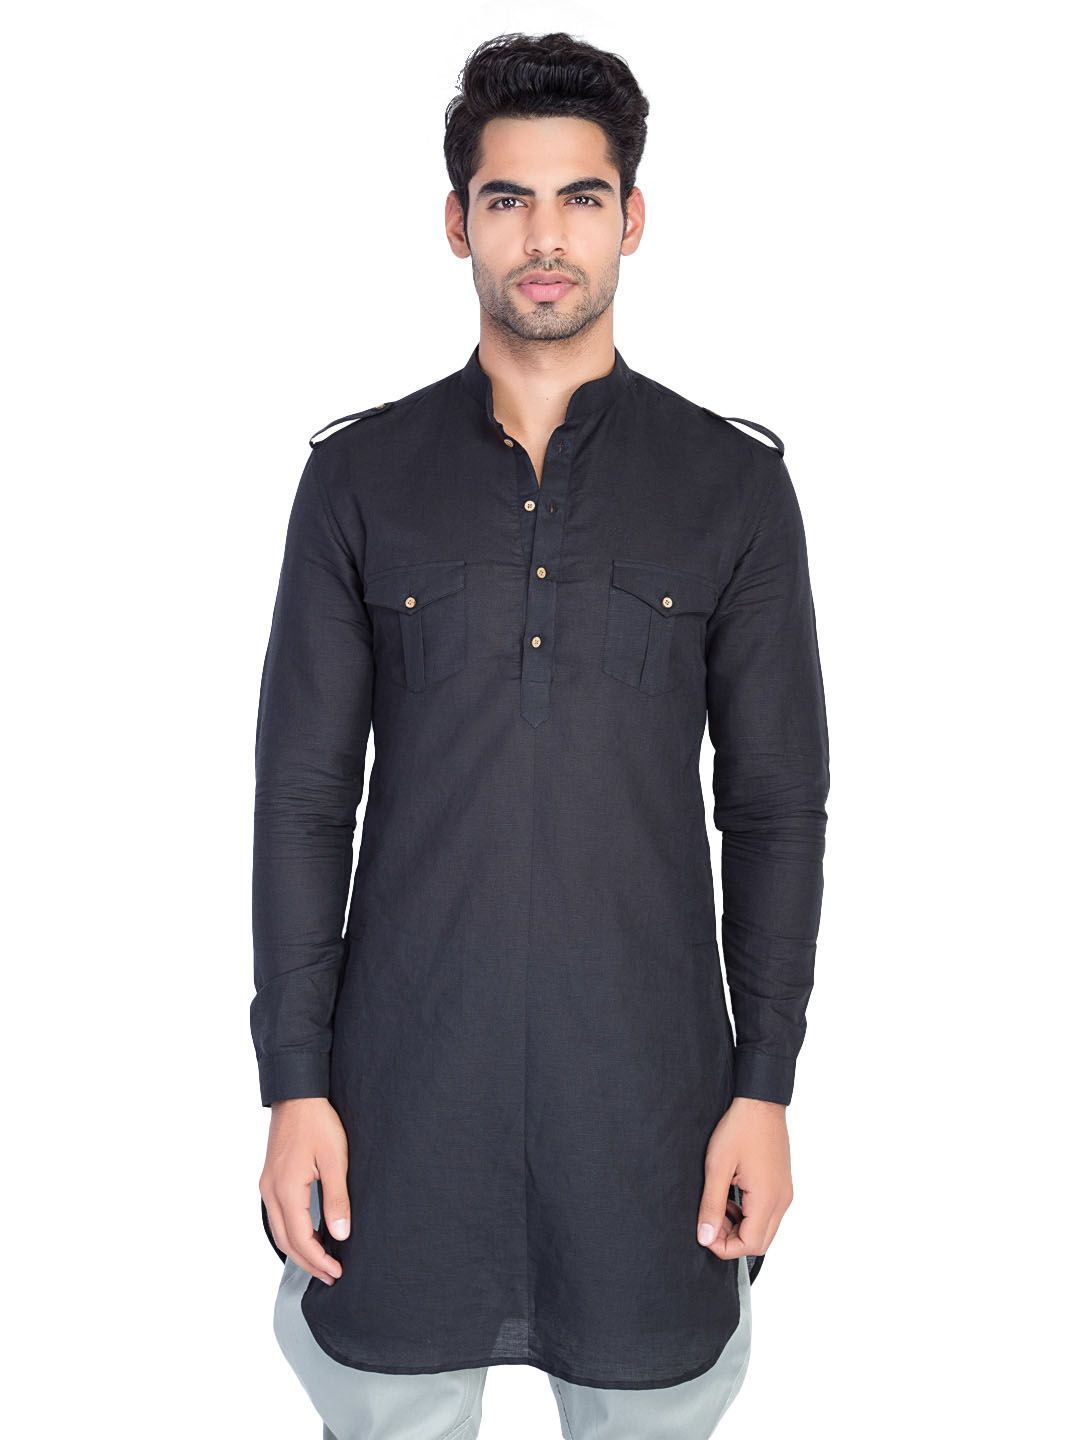 442a90fb4bf Black Linen Tunic  slimfit  tunics  men  colors  black  blue